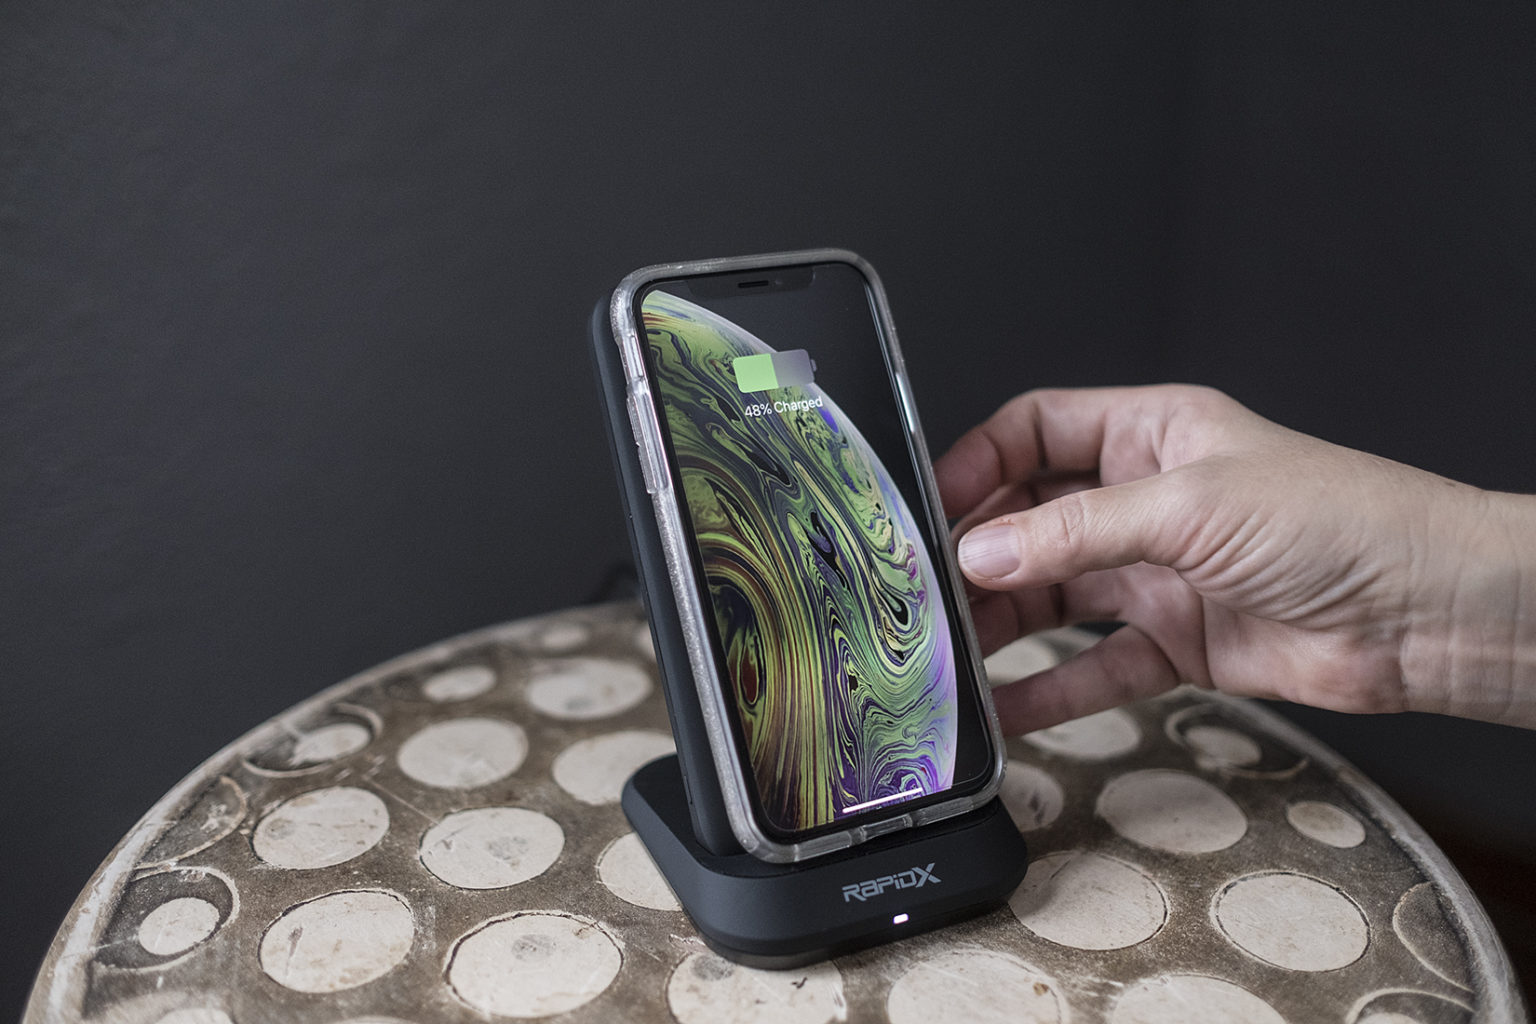 Review of RapidX MyPort wireless charger